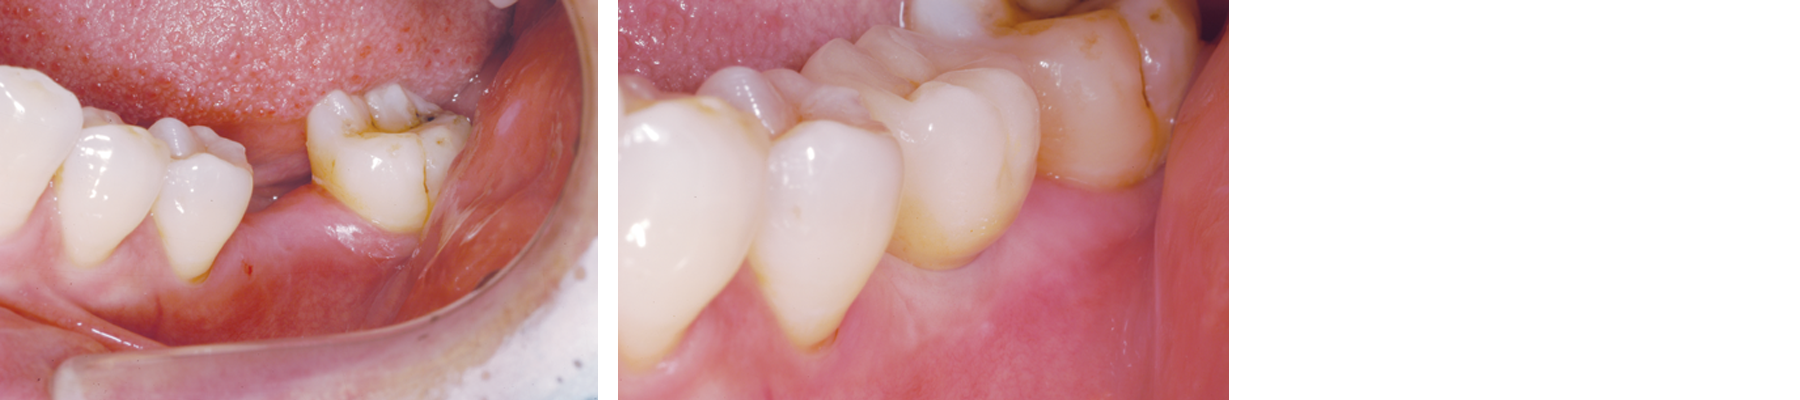 Molar implant before and after